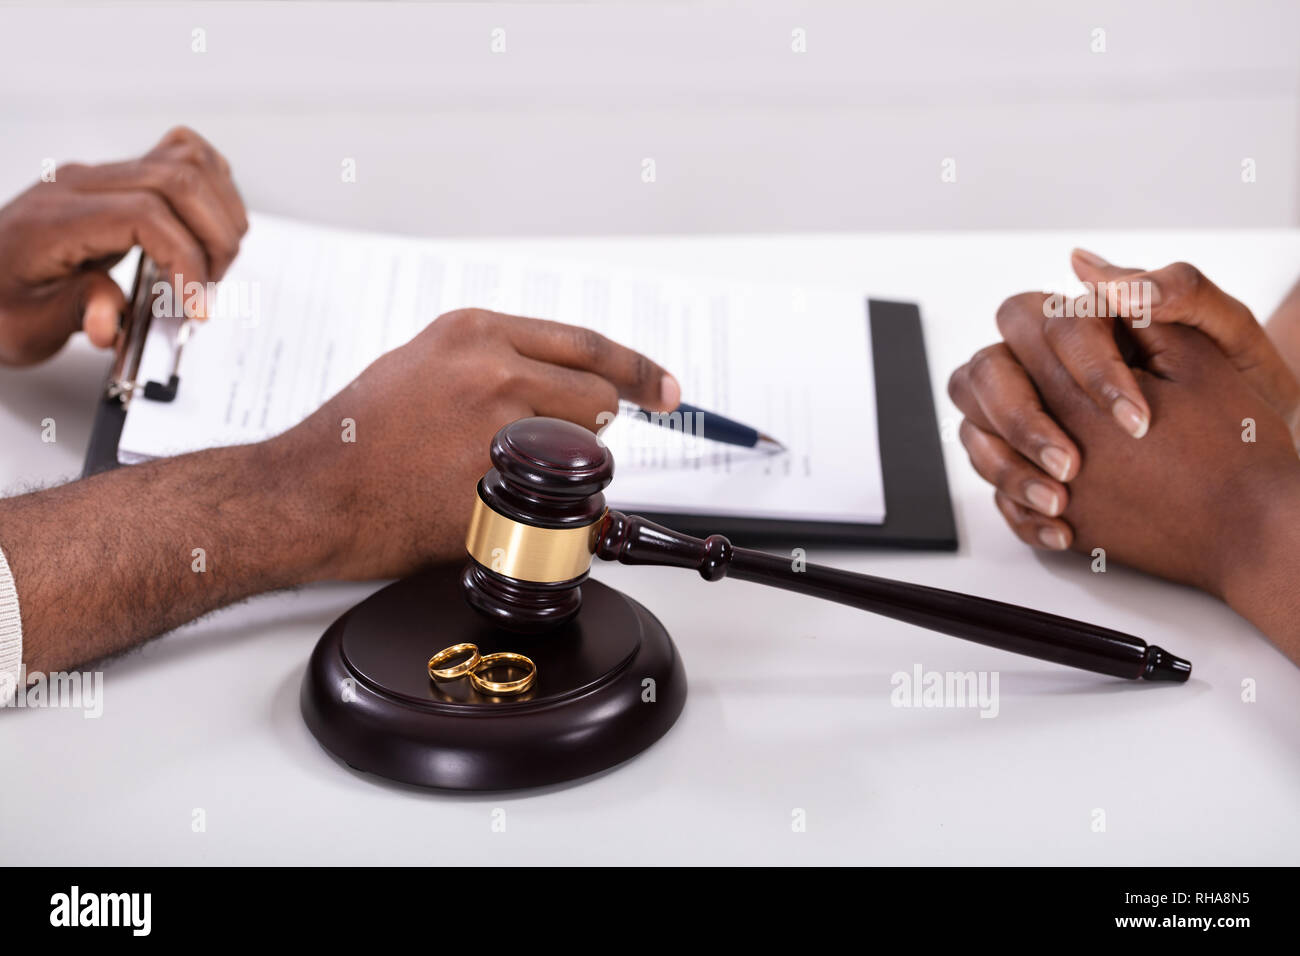 Close-up Of A Judge Explaining Contract To His Client With Gavel And Golden Rings Stock Photo